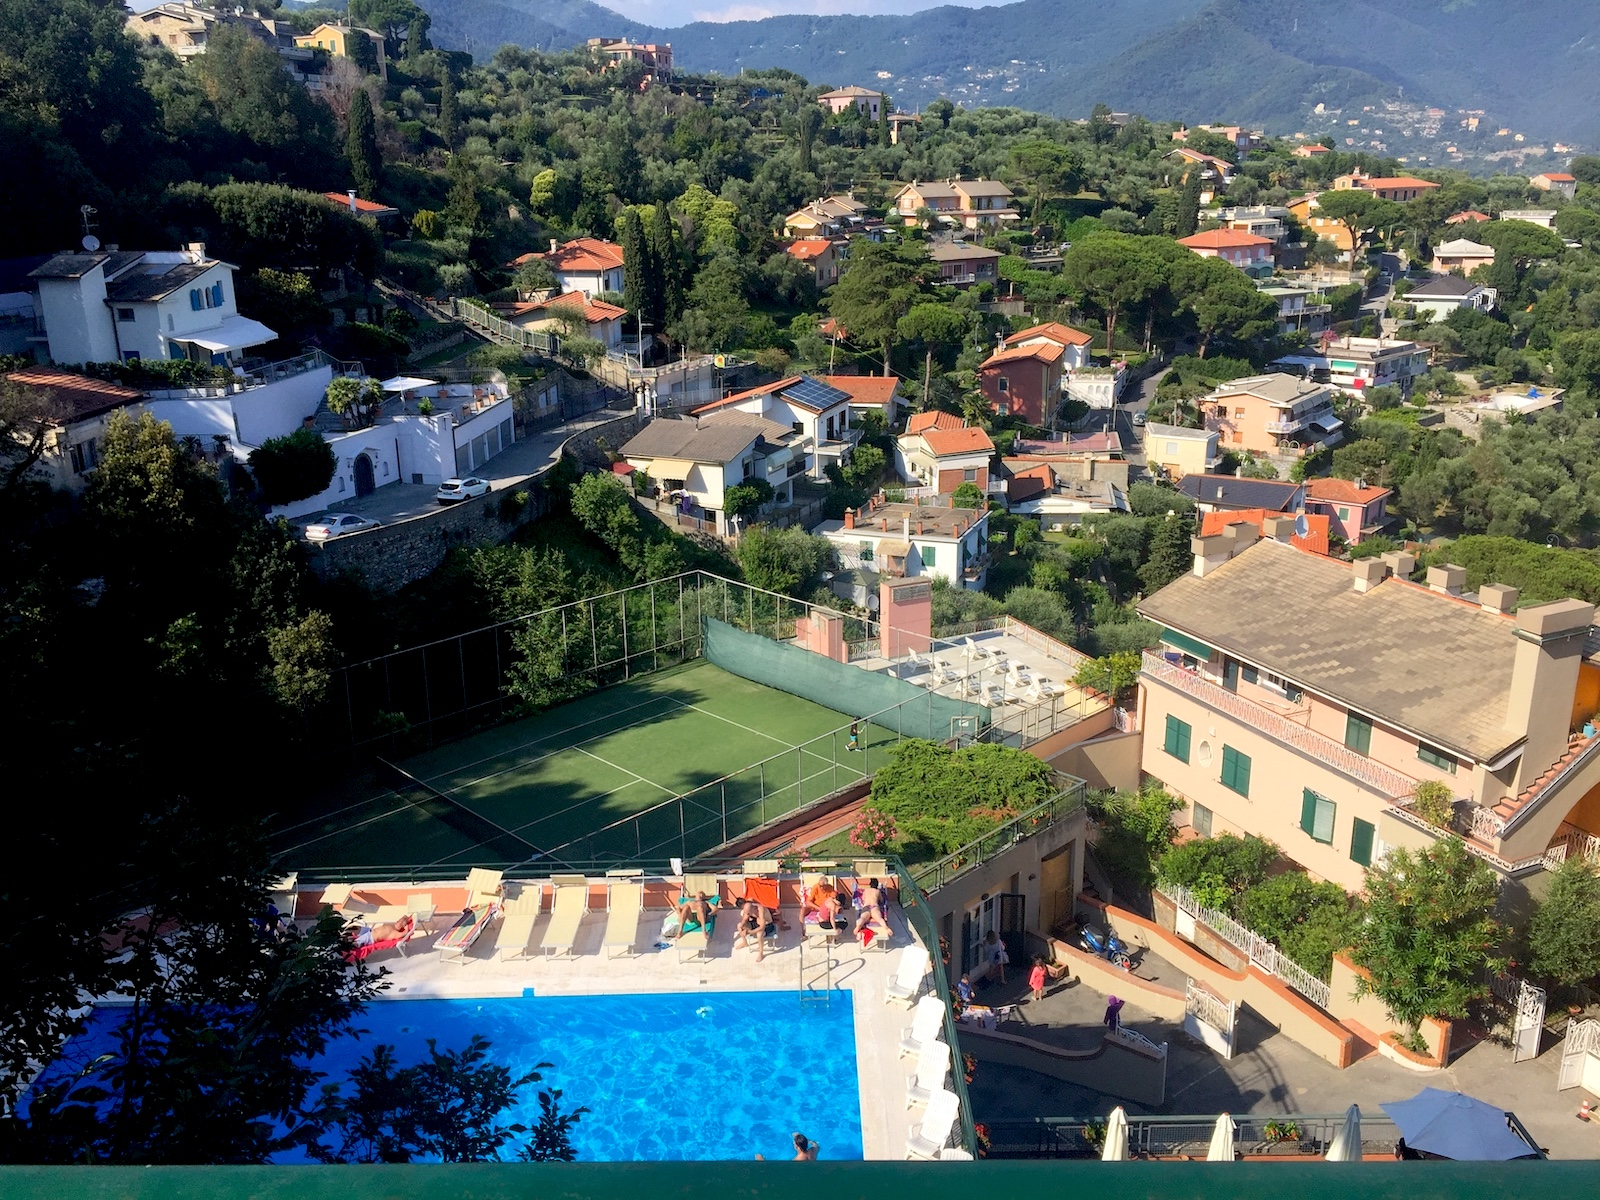 Swimming pool, tennis court and Facilities of the apartment